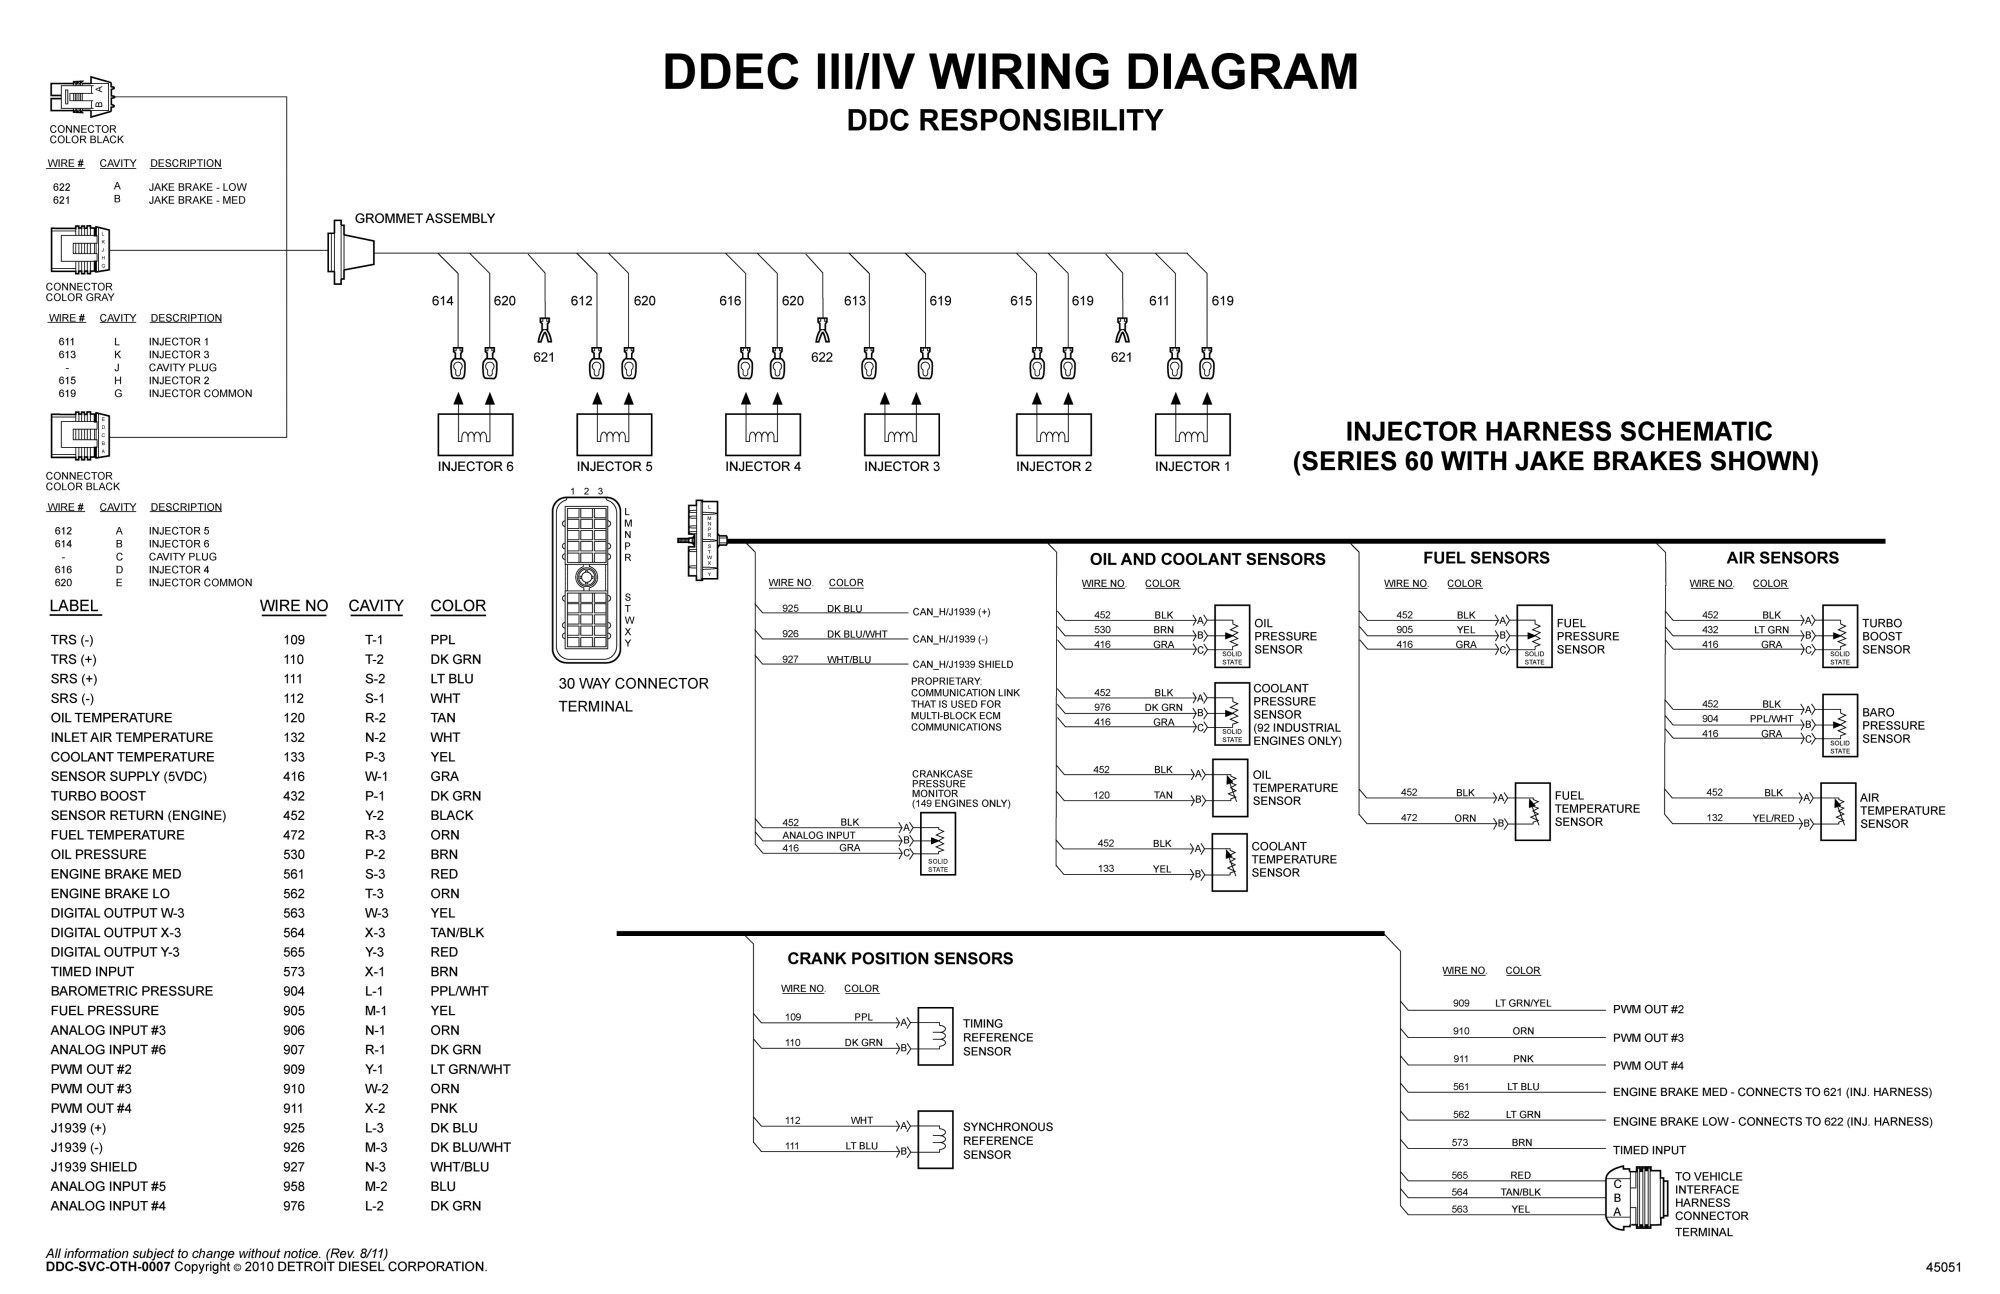 hight resolution of detroit ddec iv wiring diagram wiring diagram article ddec 3 wiring diagram ddec 3 wiring diagram